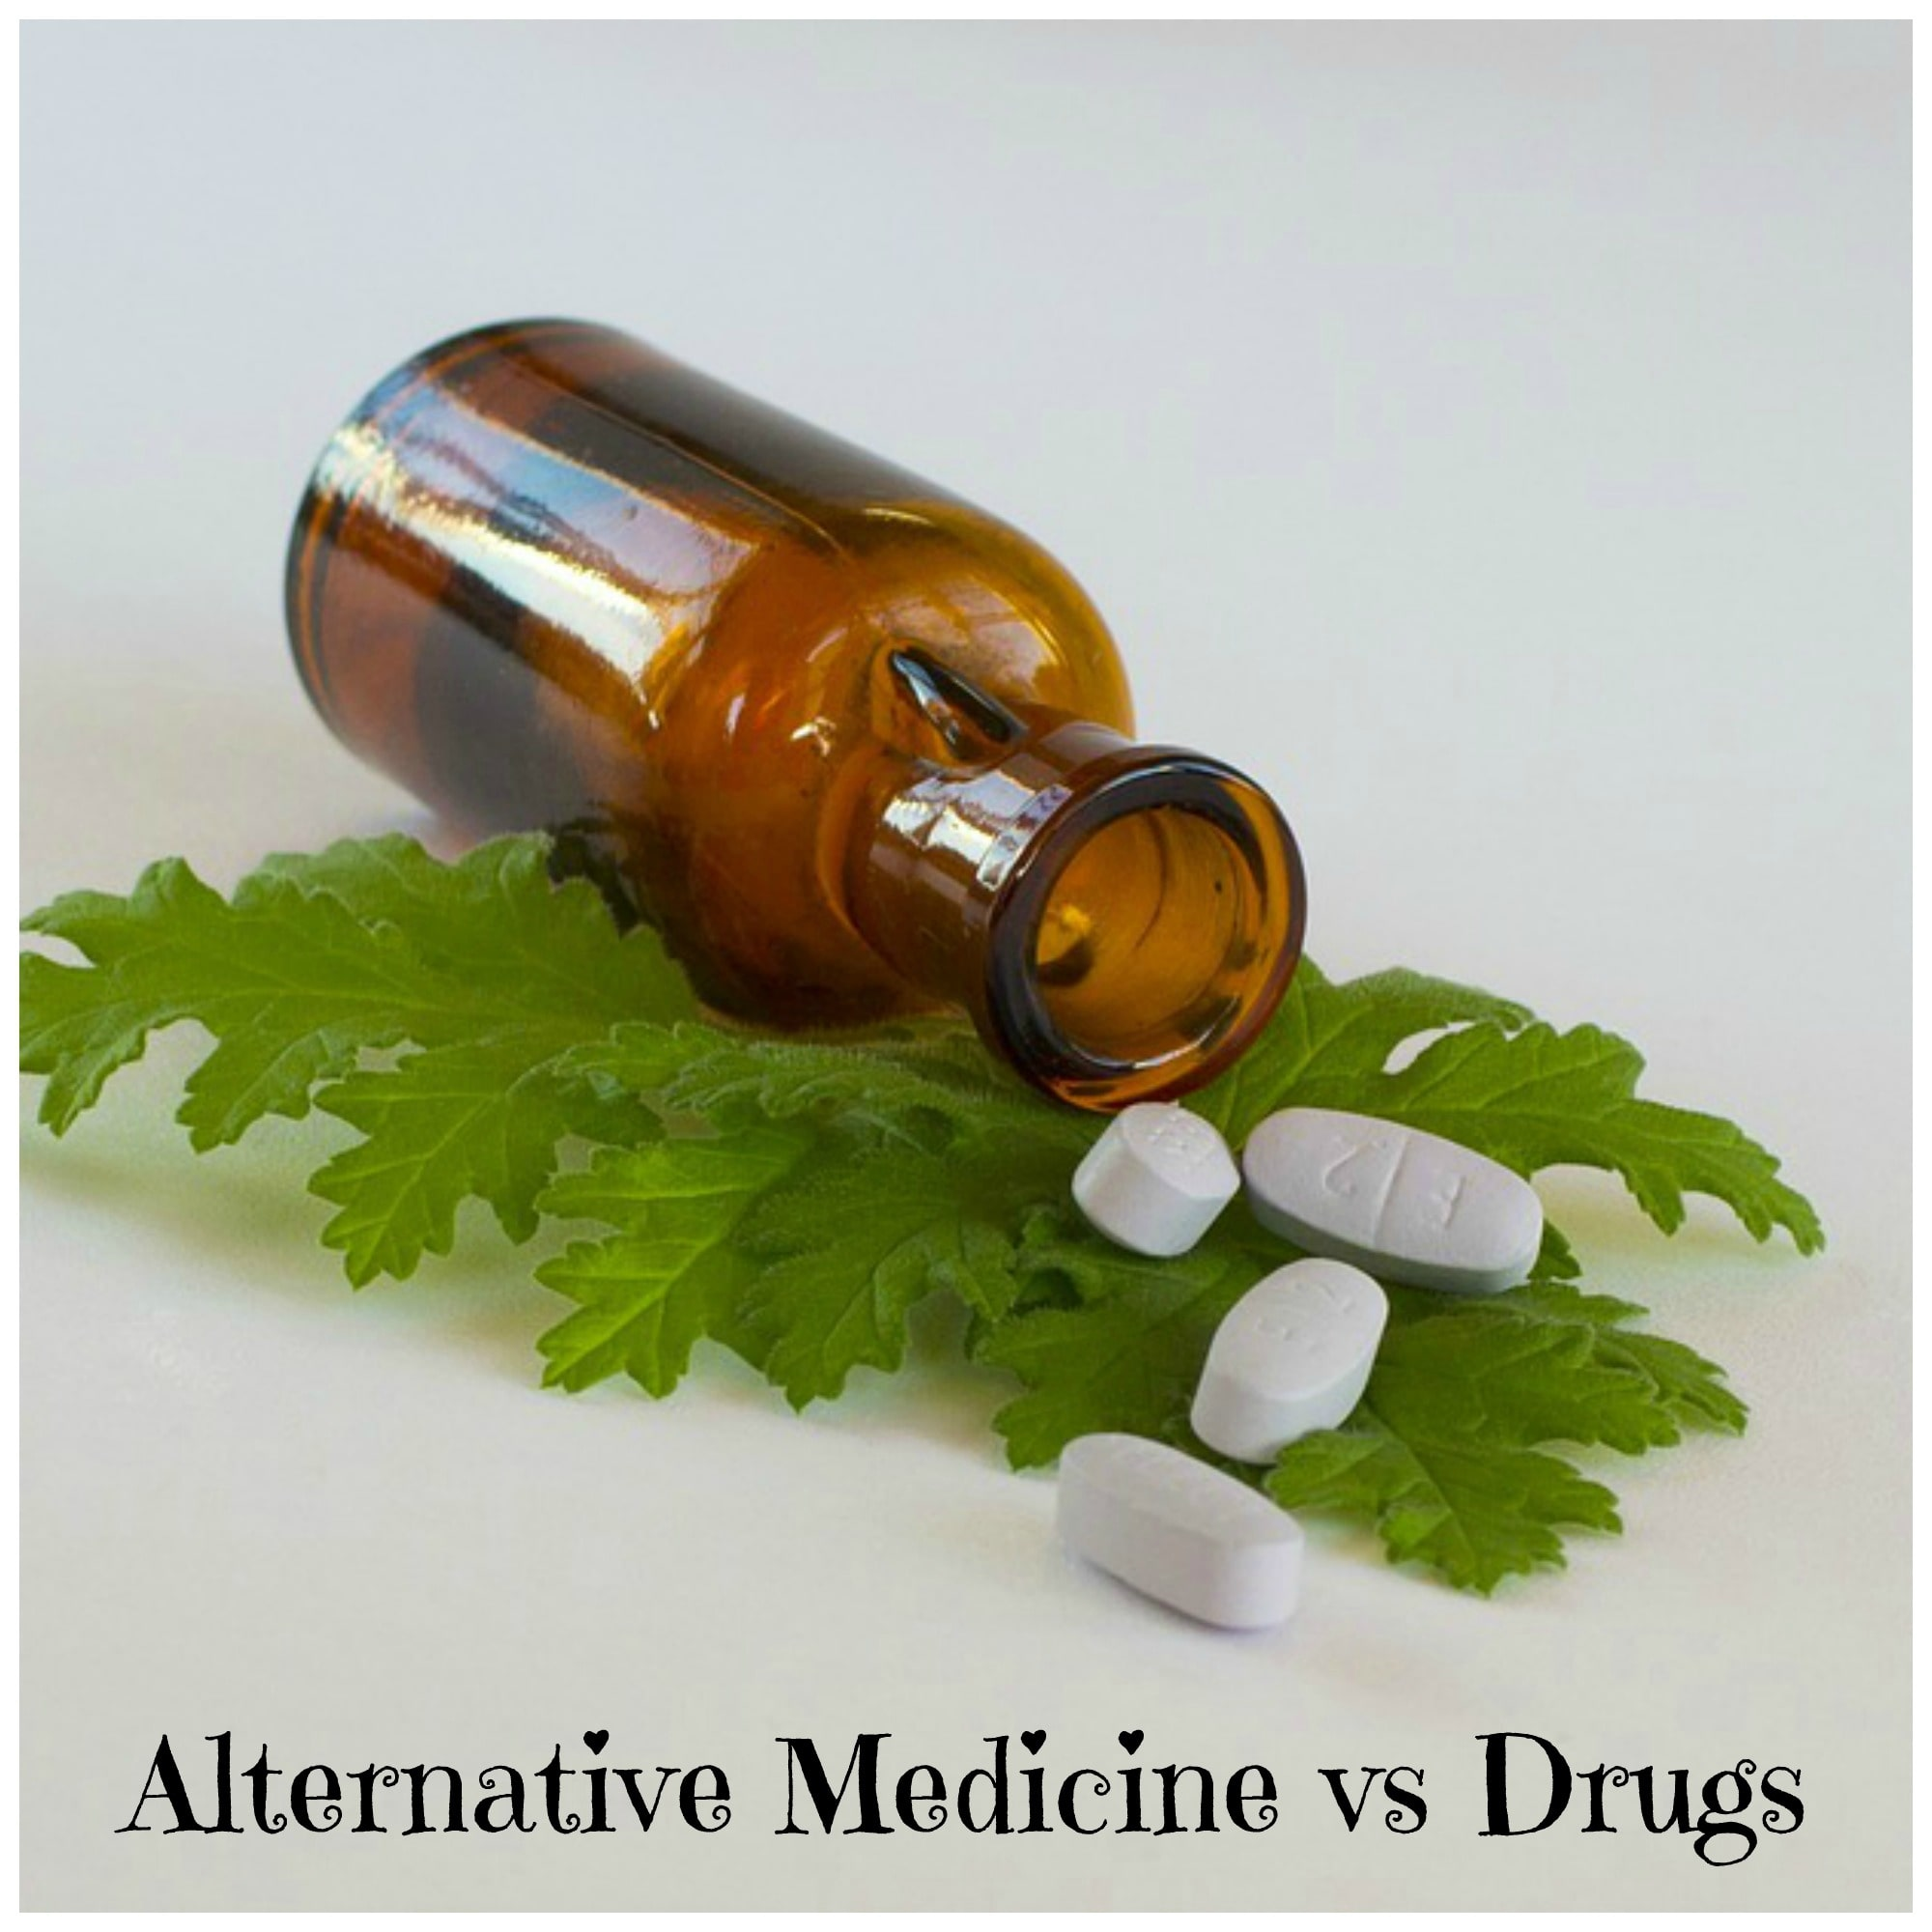 herbal medicine versus prescription drugs Herbs vs pharmaceutical drugs june 13, 2013  for every drug is a herbal alternative dherbscom sell herbal alternatives to drugs you have nothing to worry about product links: full body detox substance abuse cleanse ethereal bliss click here to view in a new window q: i am looking for herbal alternatives to the prescription drugs.